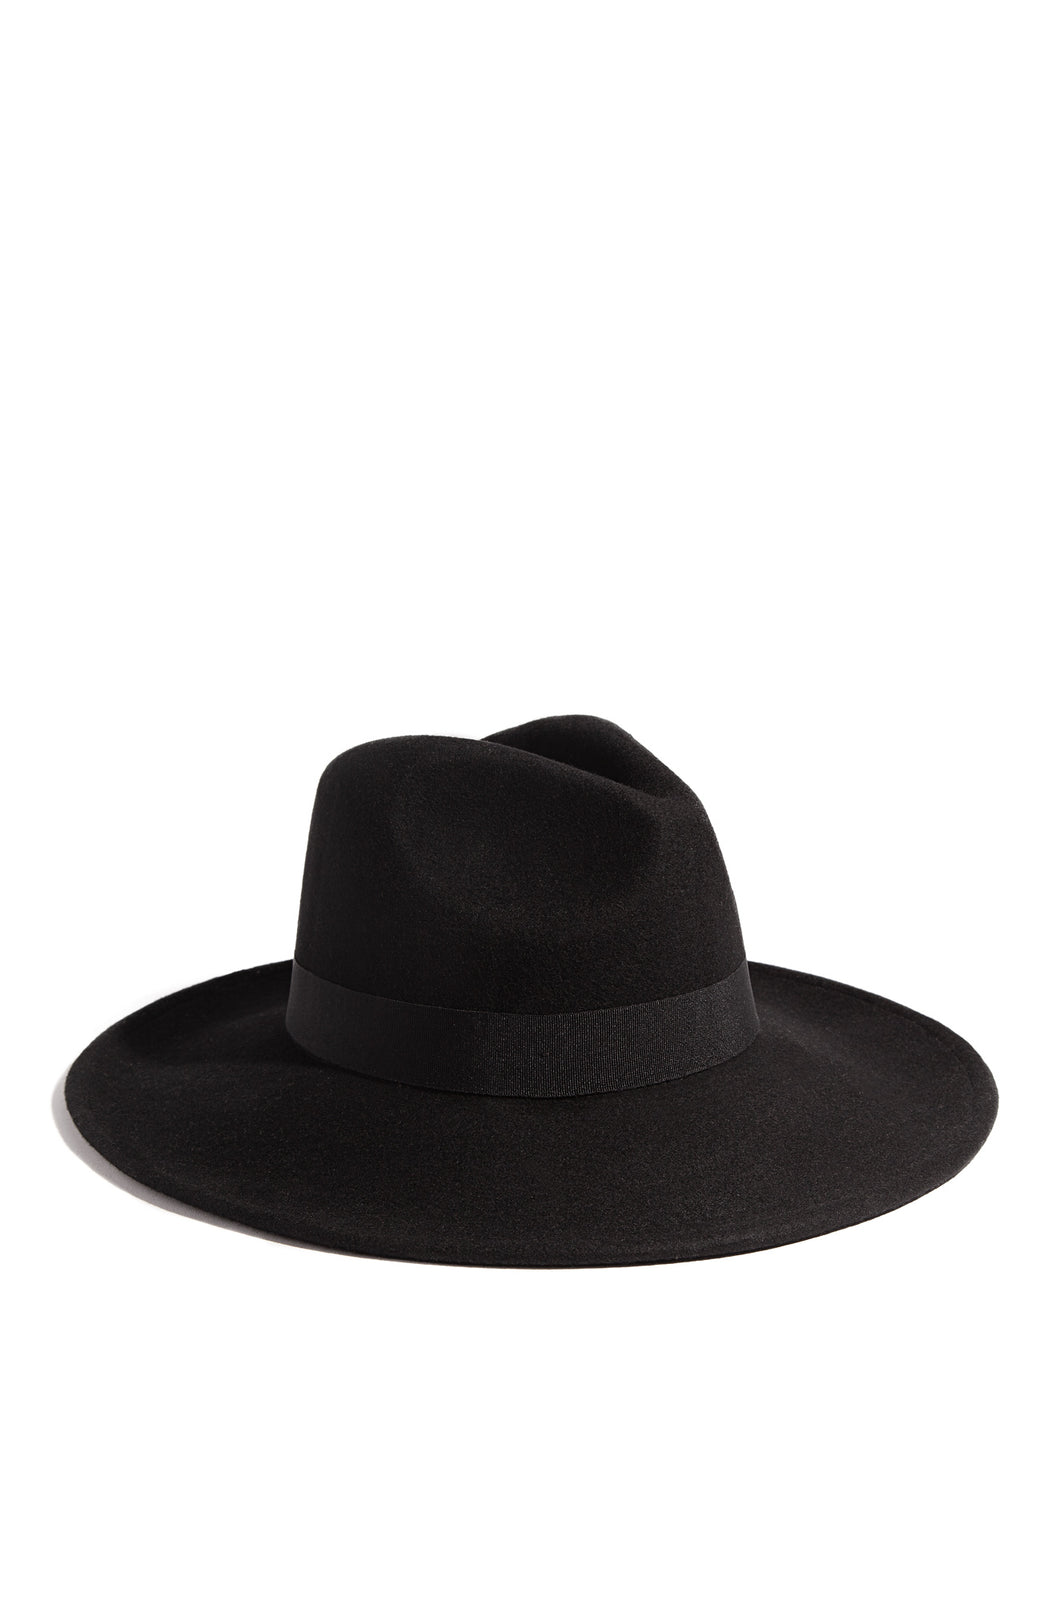 All The Shade Hat - Black